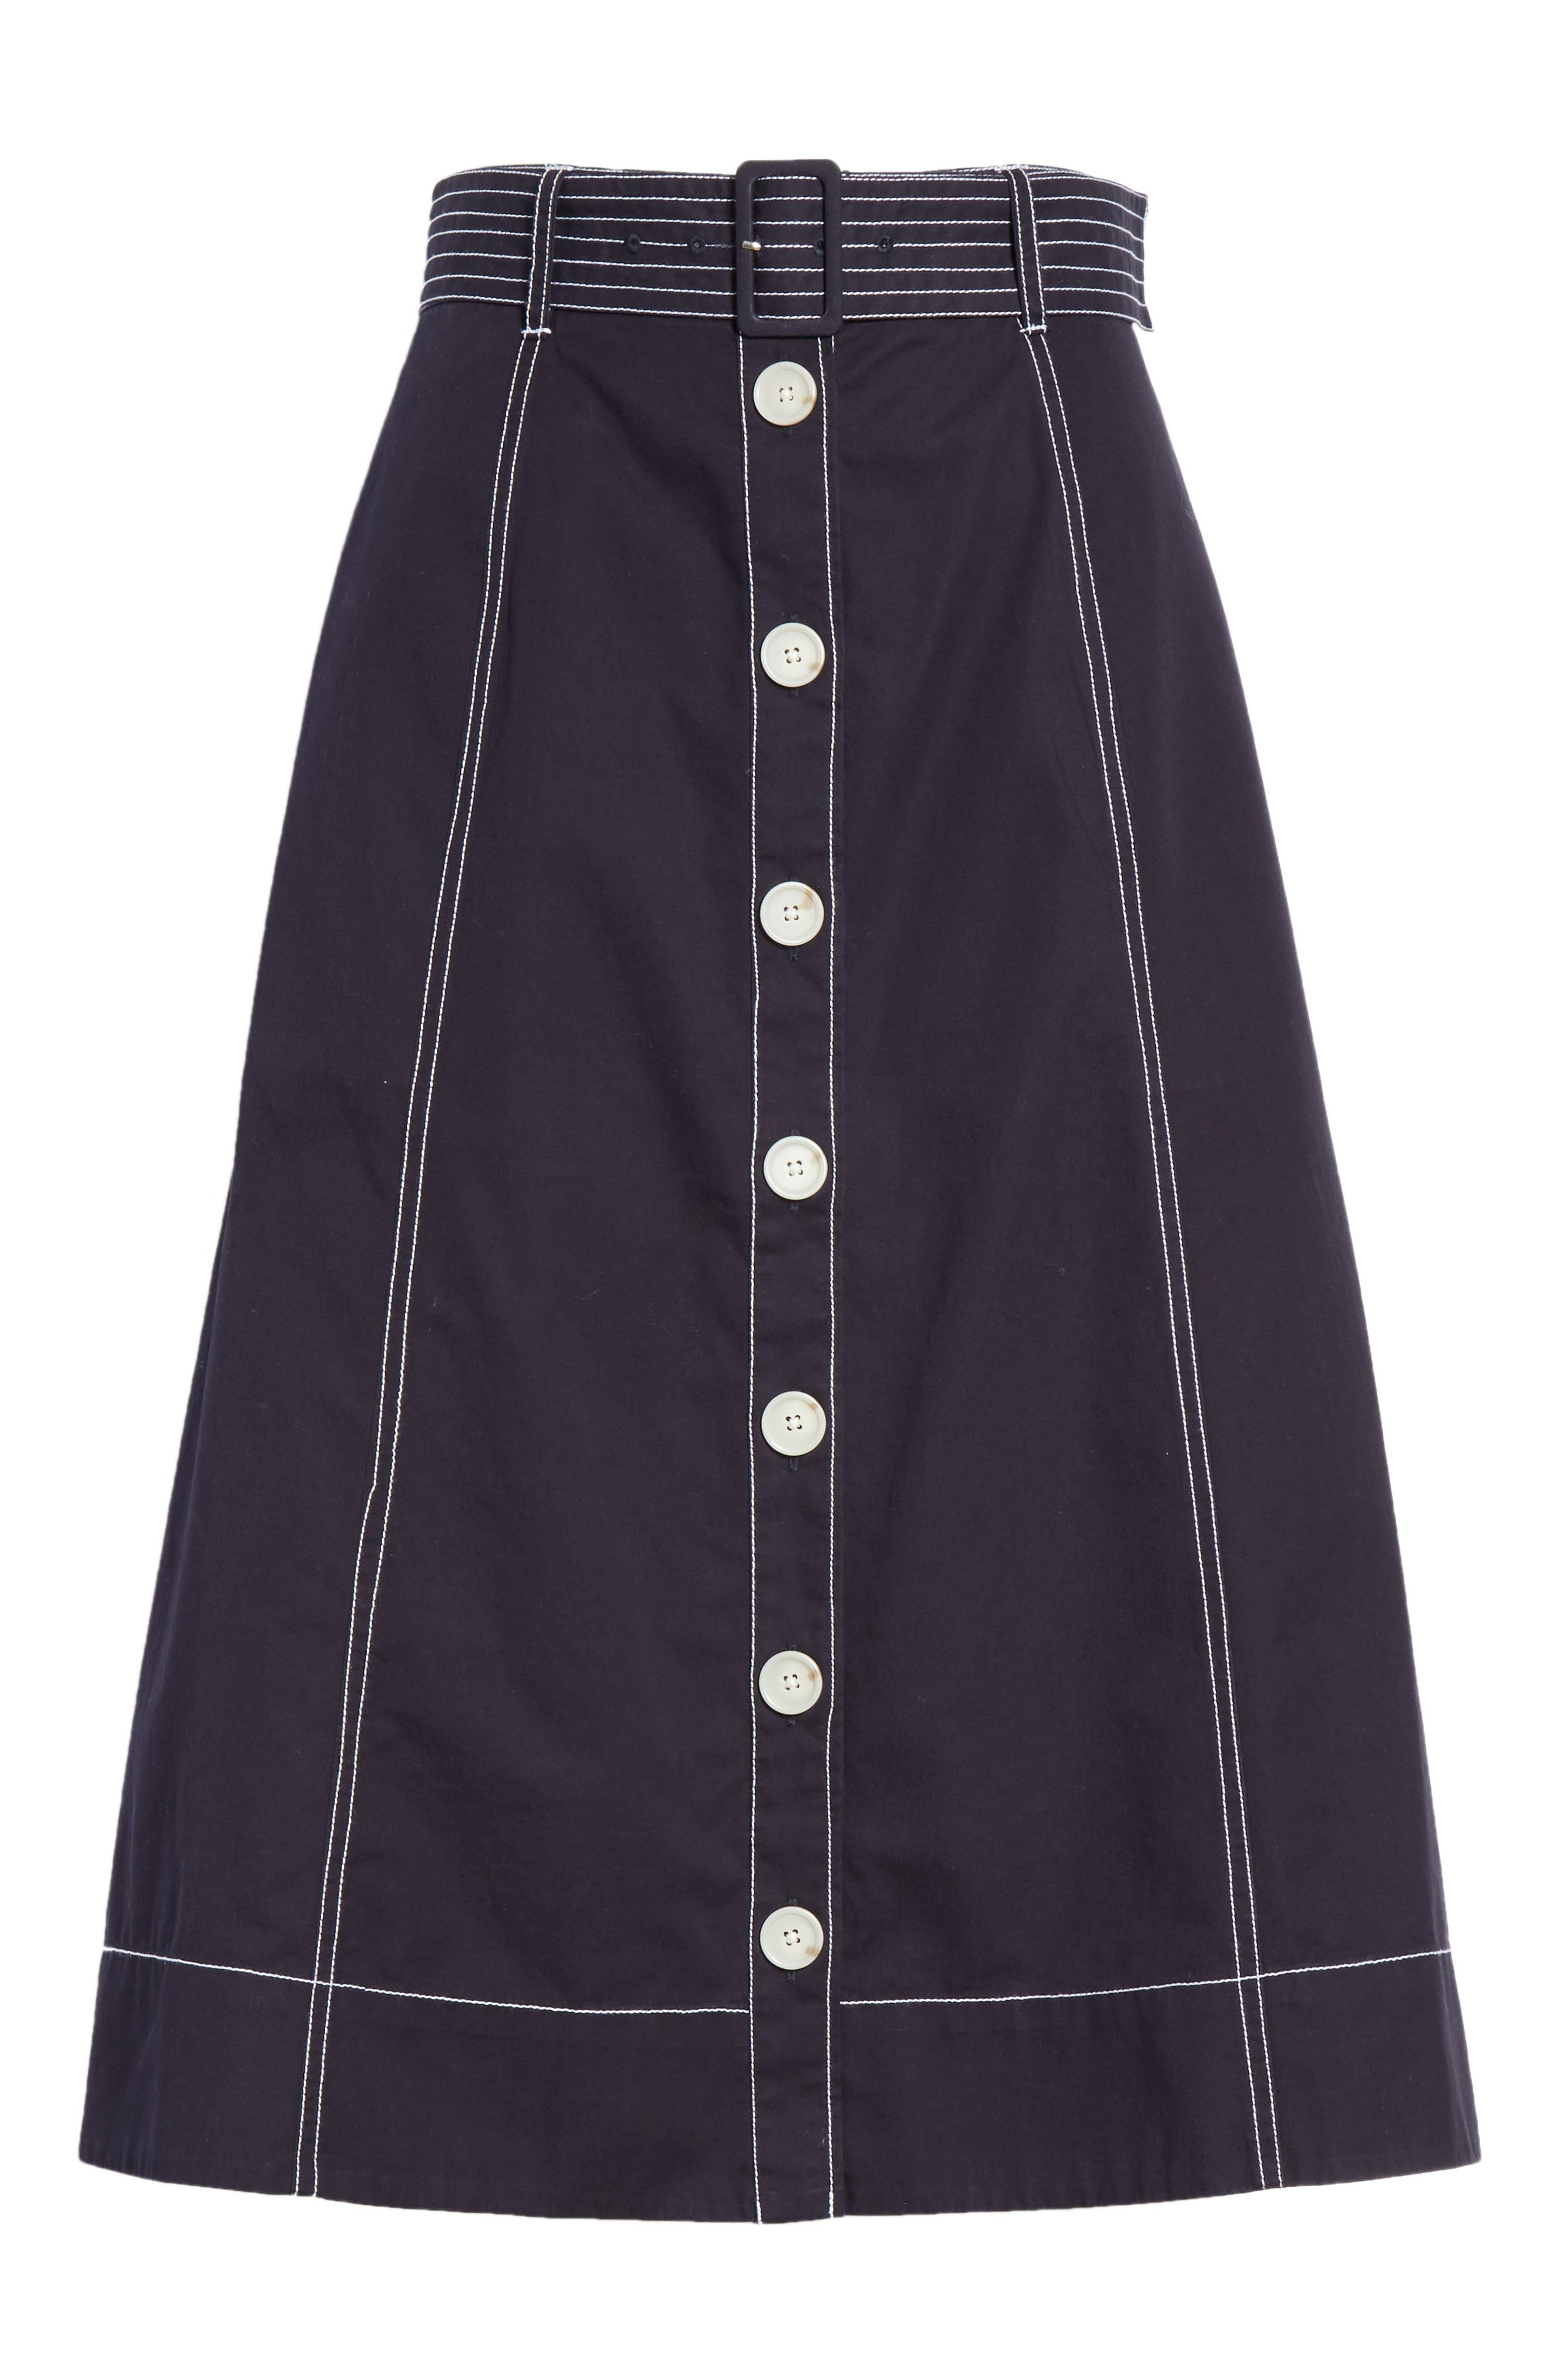 Mayaly Belted Cotton Skirt,                             Alternate thumbnail 6, color,                             MIDNIGHT